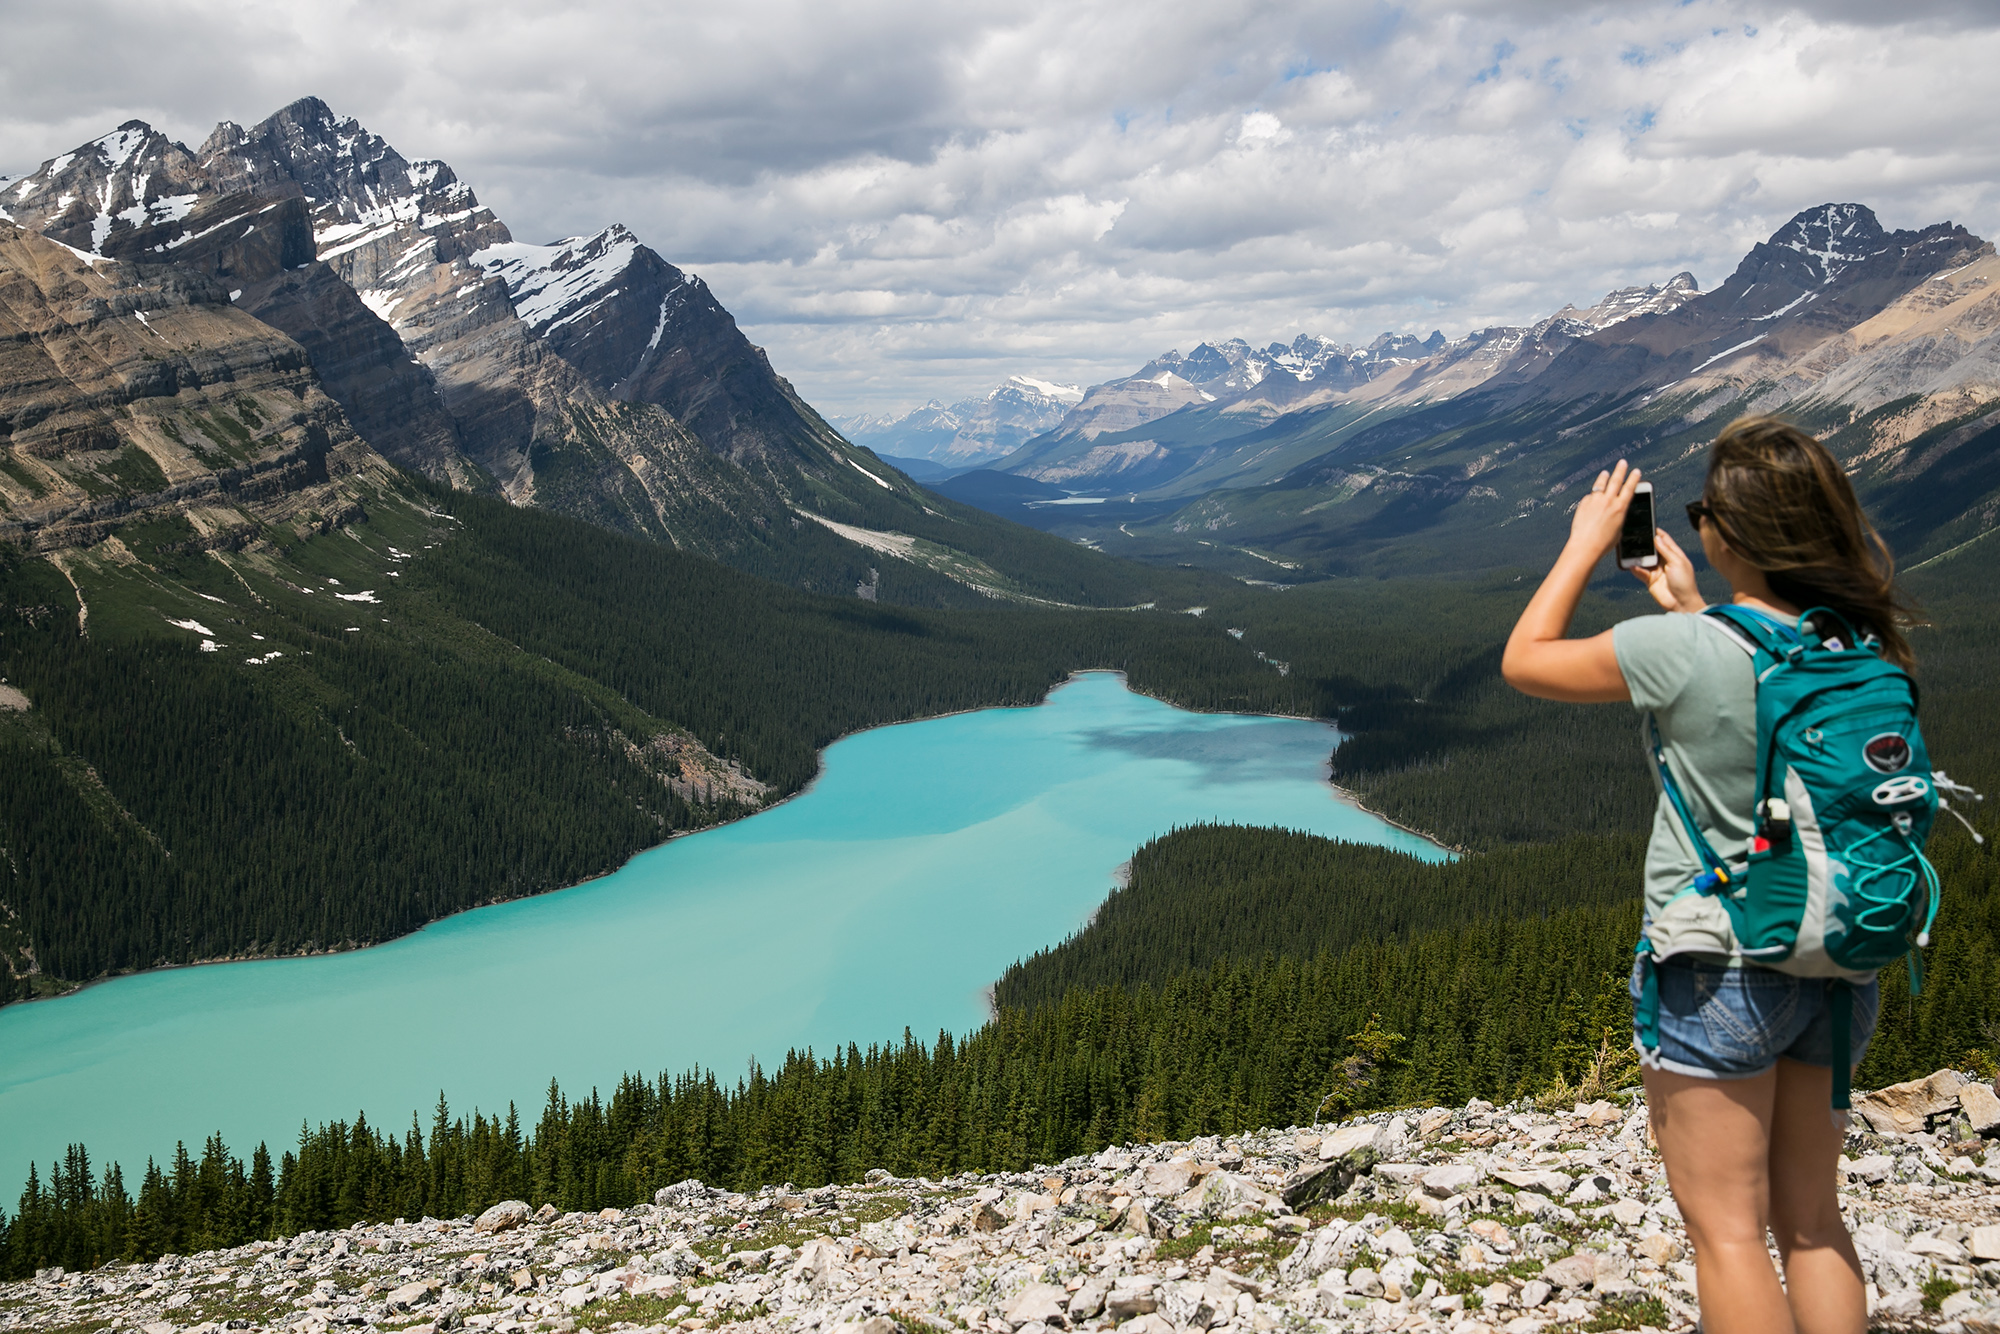 Britnee snaps a photo of Peyto Lake in Banff National Park. We walked higher than the crowded viewpoint and were rewarded with a quiet (but windy) spot to take in the view.